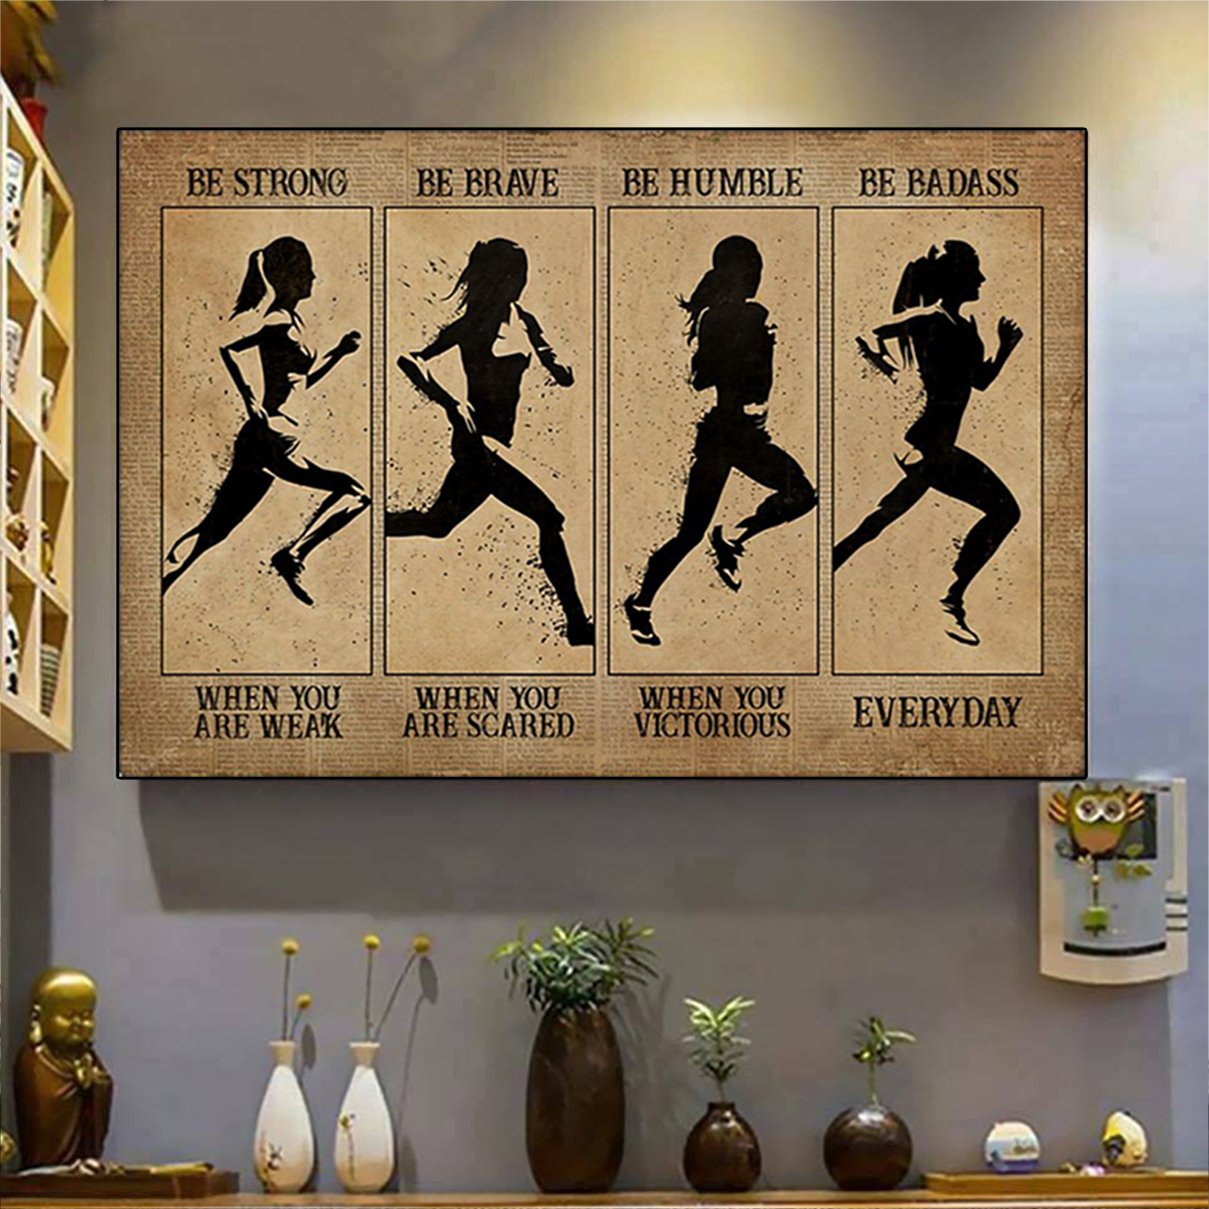 Marathon woman be strong be brave be humble be badass poster A3